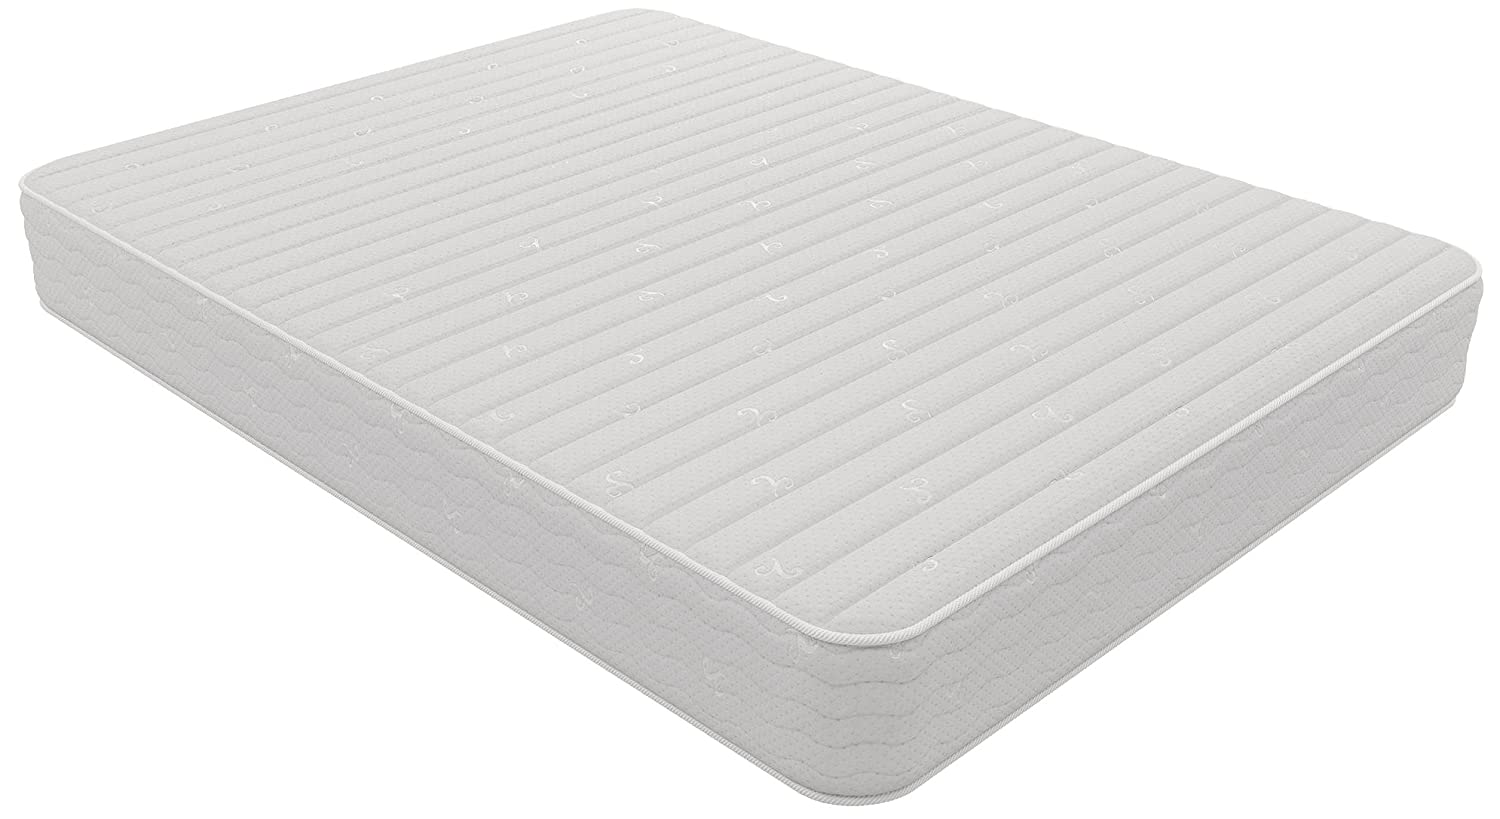 signature sleep essential 6-inch twin mattress